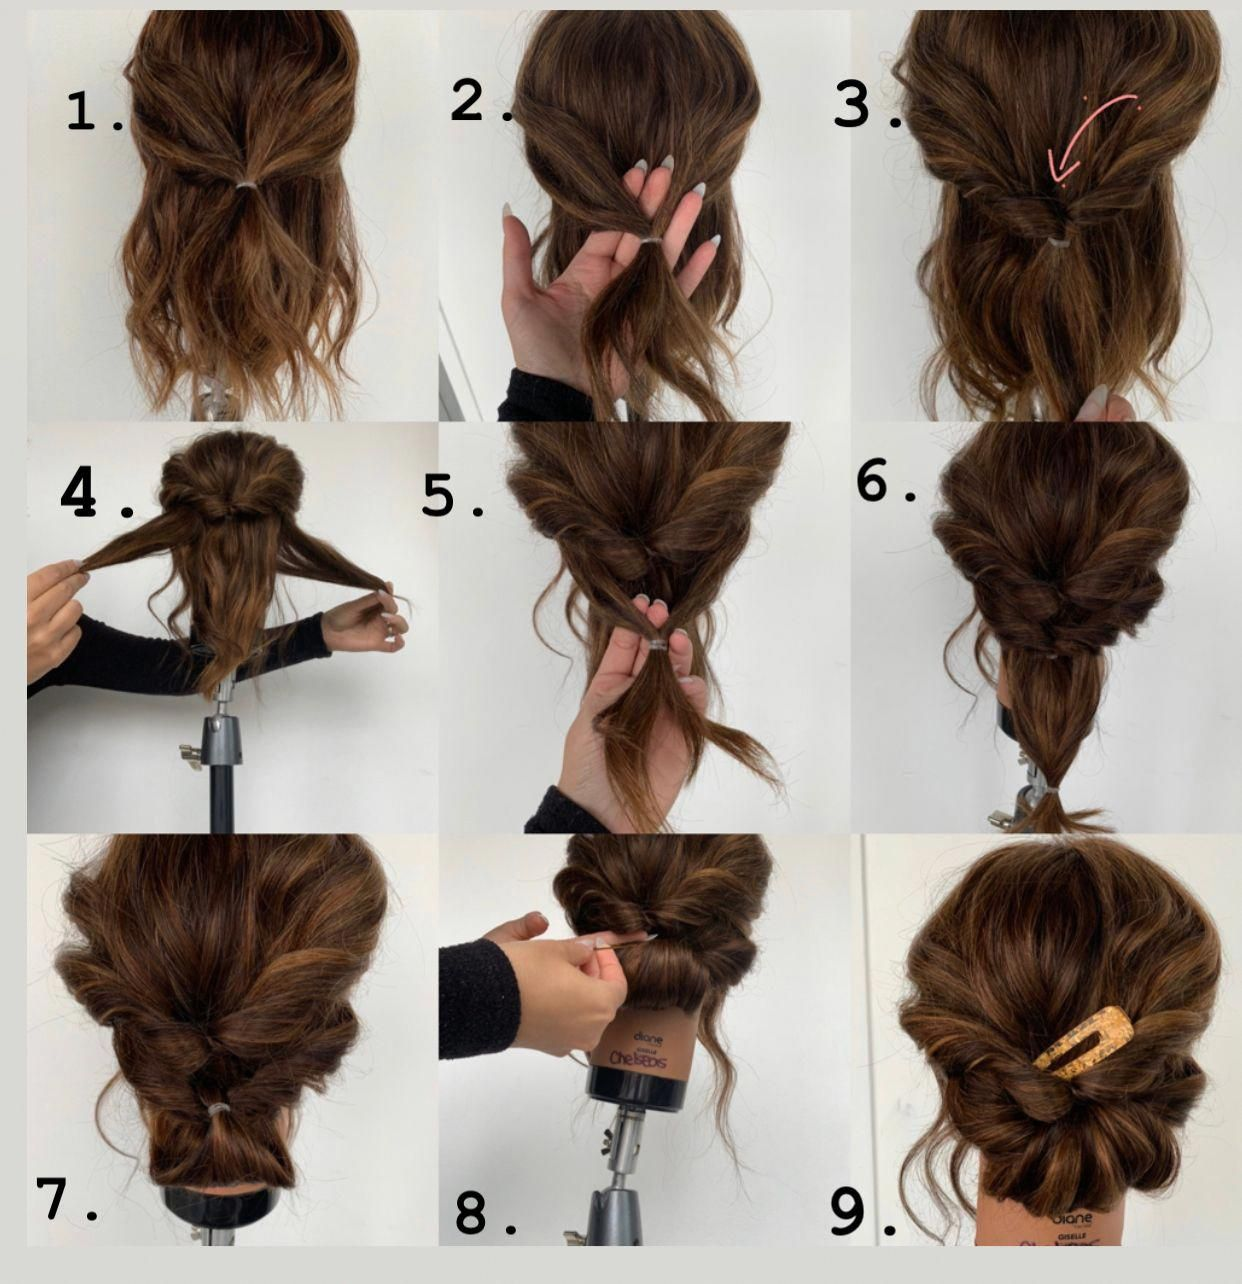 Easy Hairstyle Tutorial Pictorial for Christmas Party or New Years